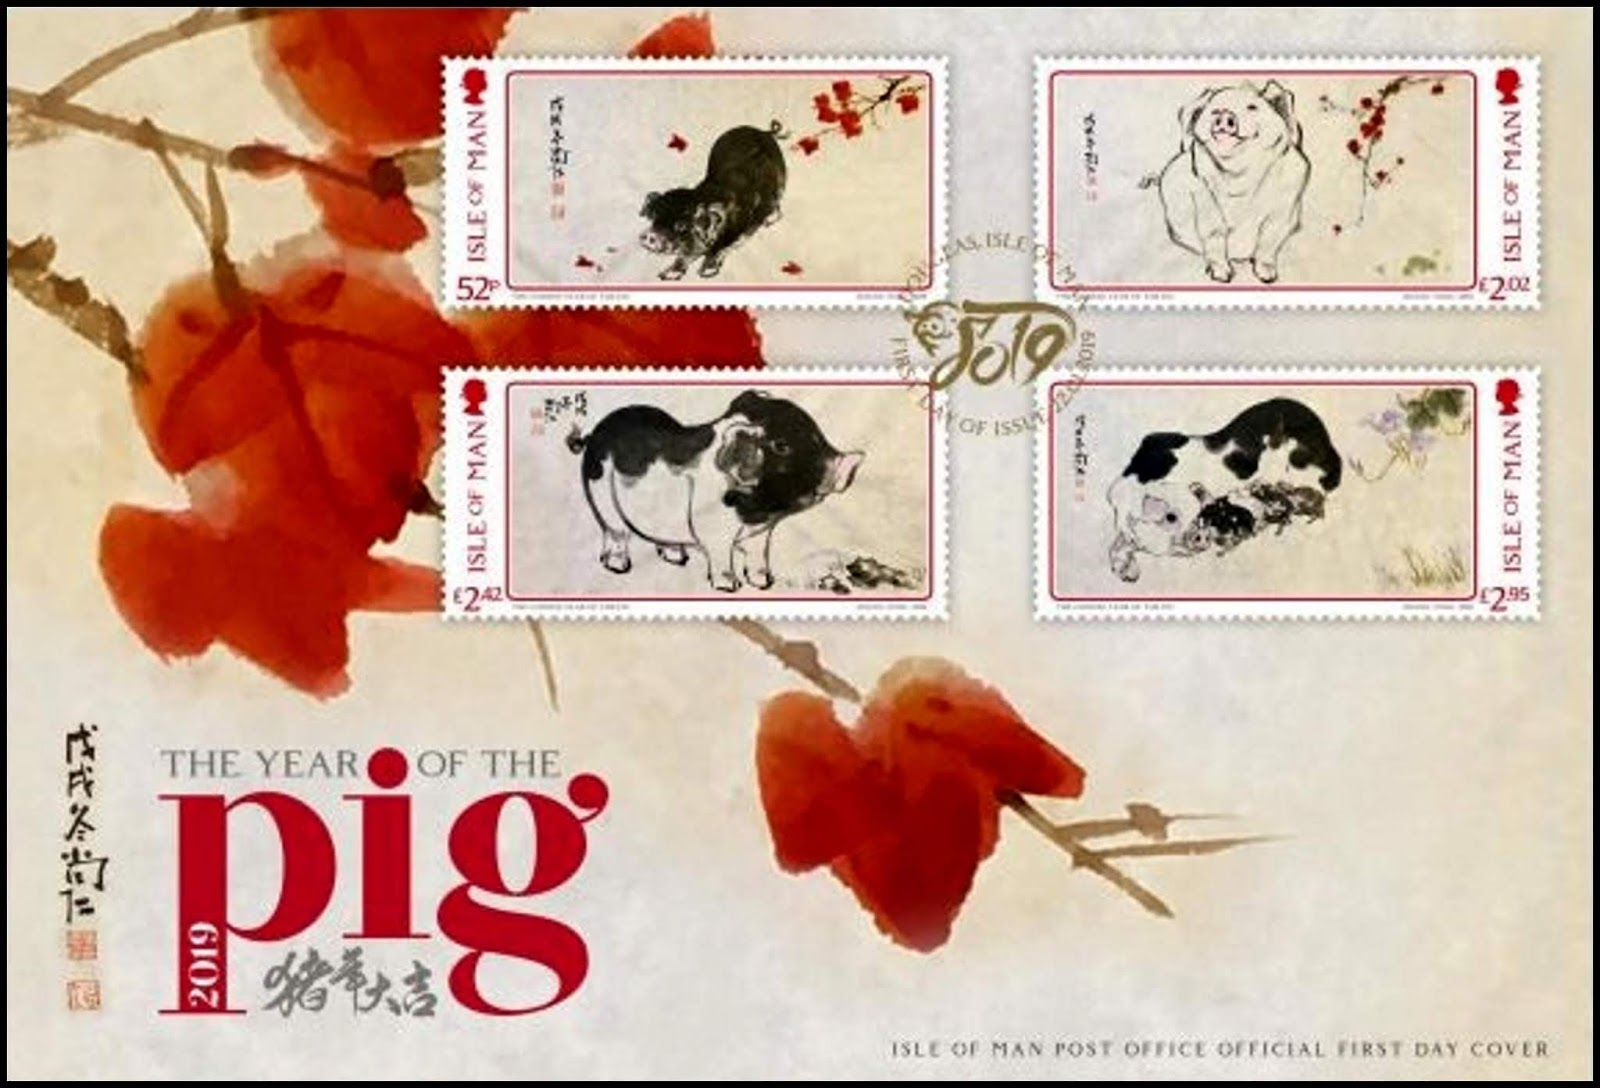 Isle of Man - Year of the Pig (January 22, 2019) first day cover